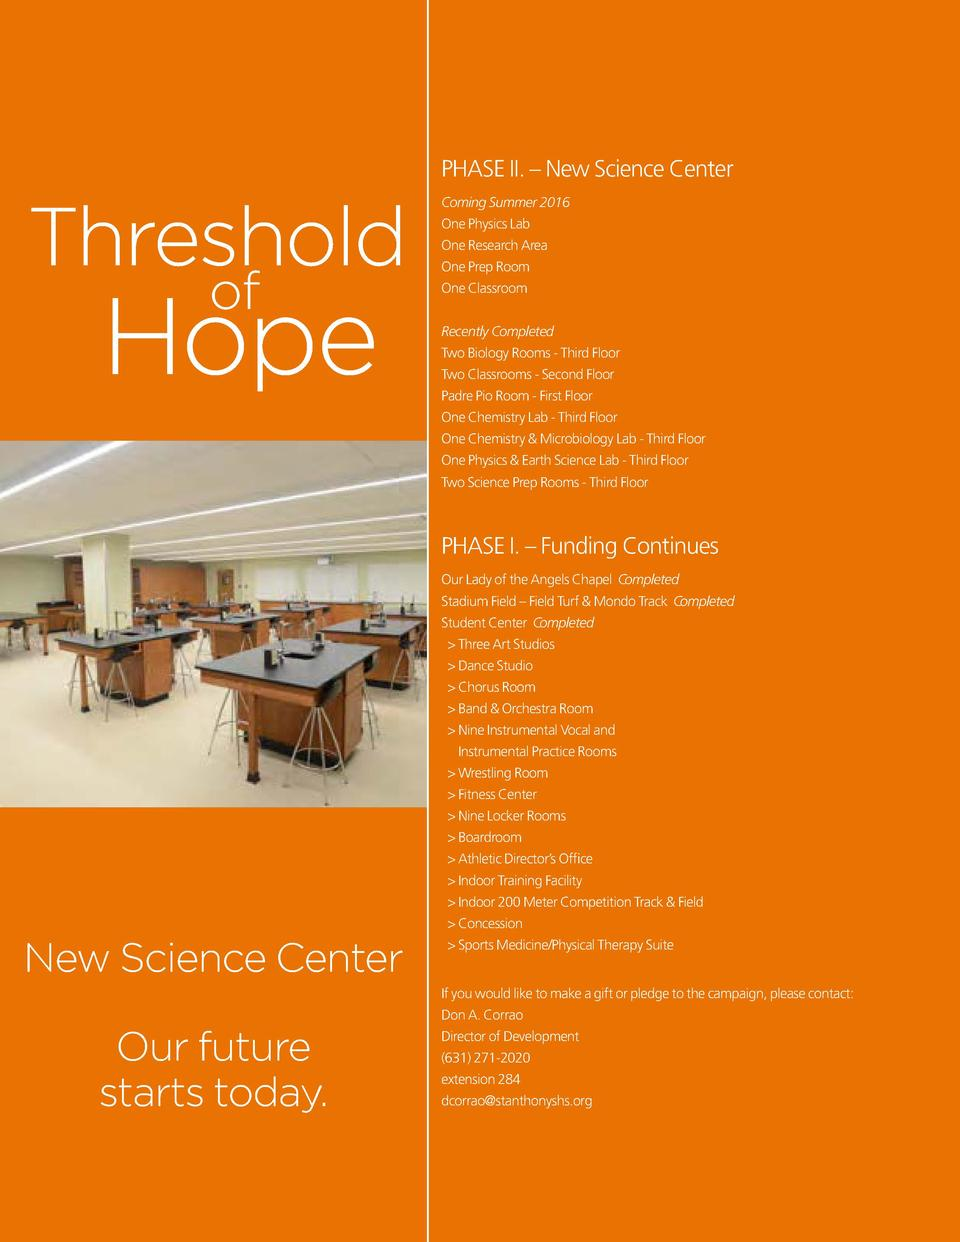 PHASE II.     New Science Center  Threshold of  Hope  Coming Summer 2016 One Physics Lab One Research Area One Prep Room O...